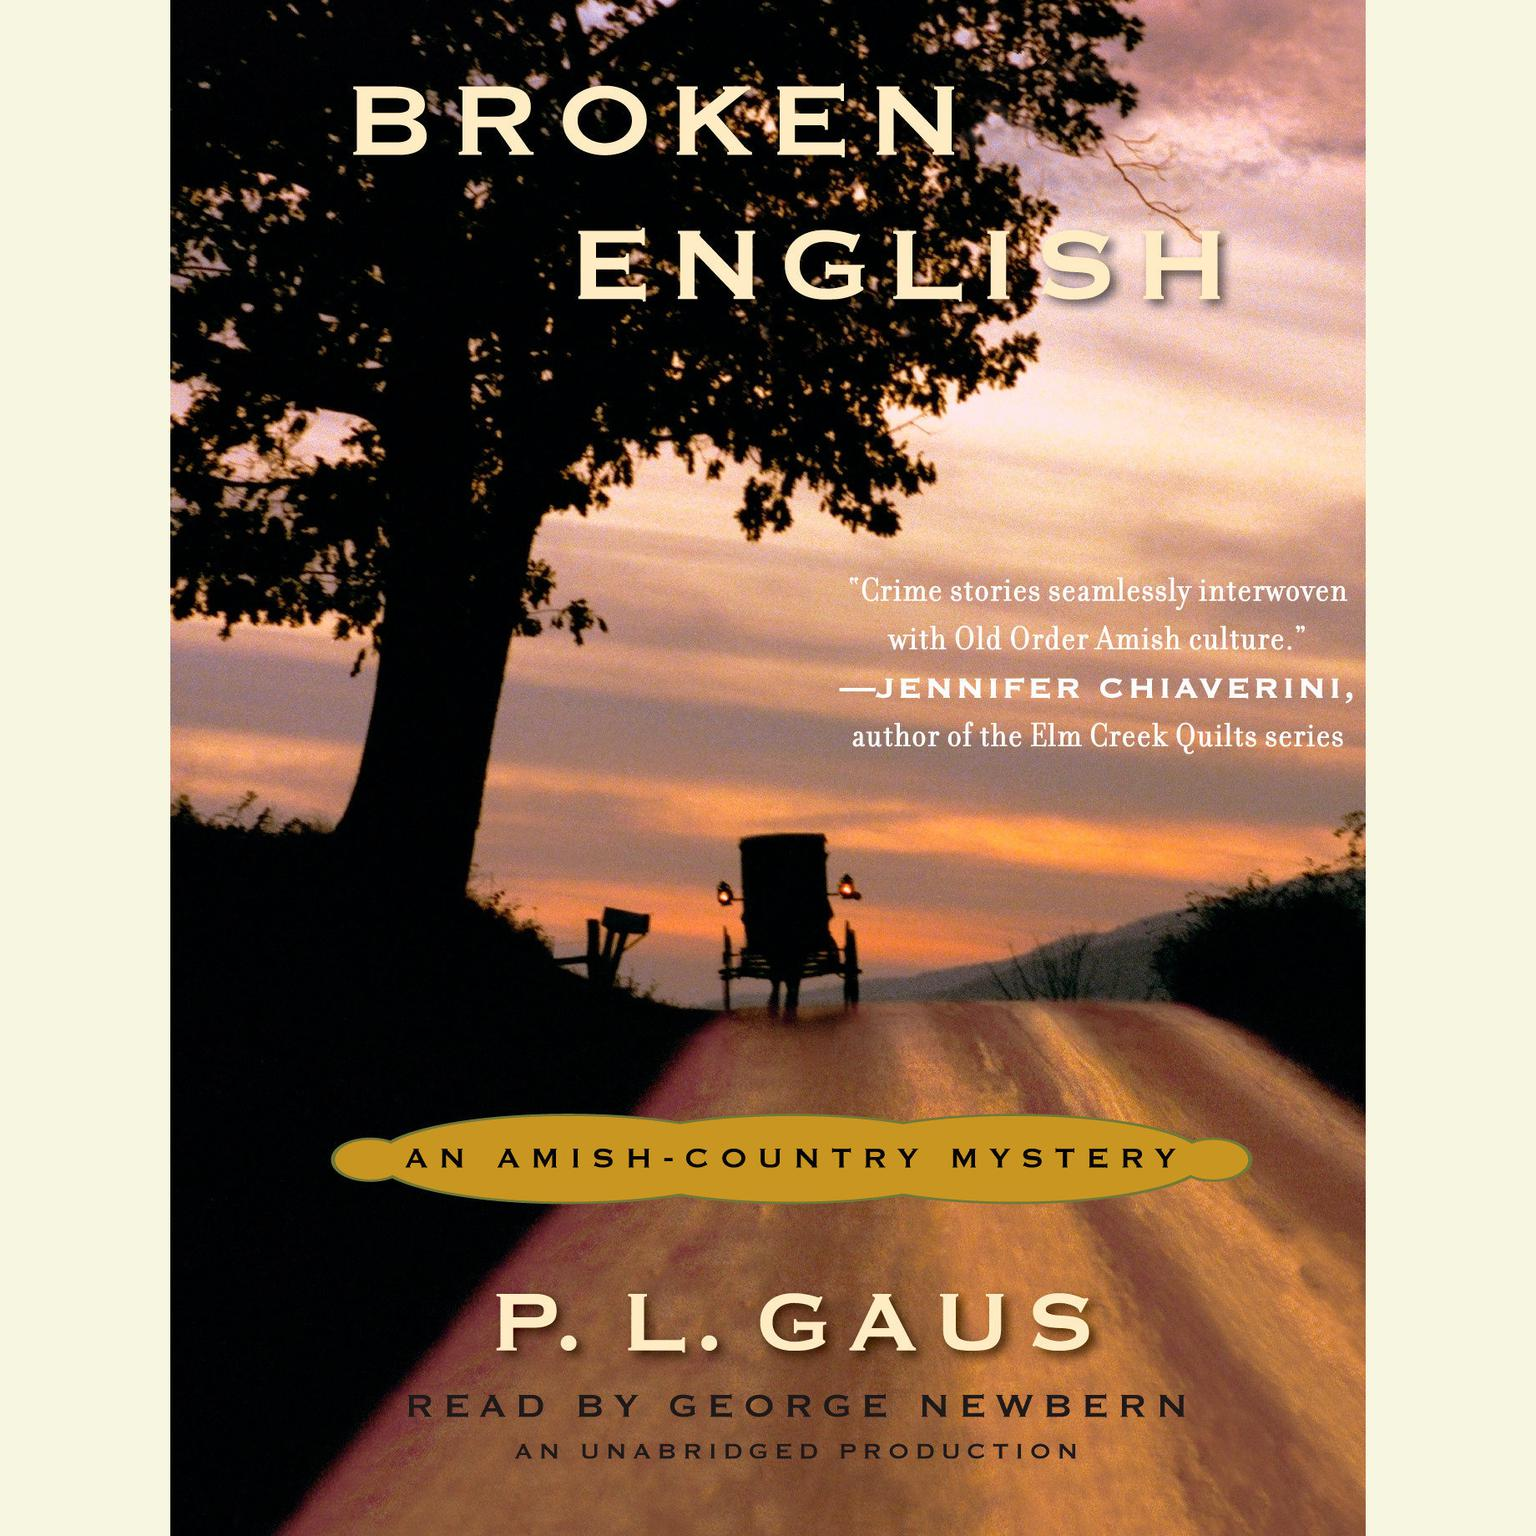 Printable Broken English: An Amish-Country Mystery (#2) Audiobook Cover Art